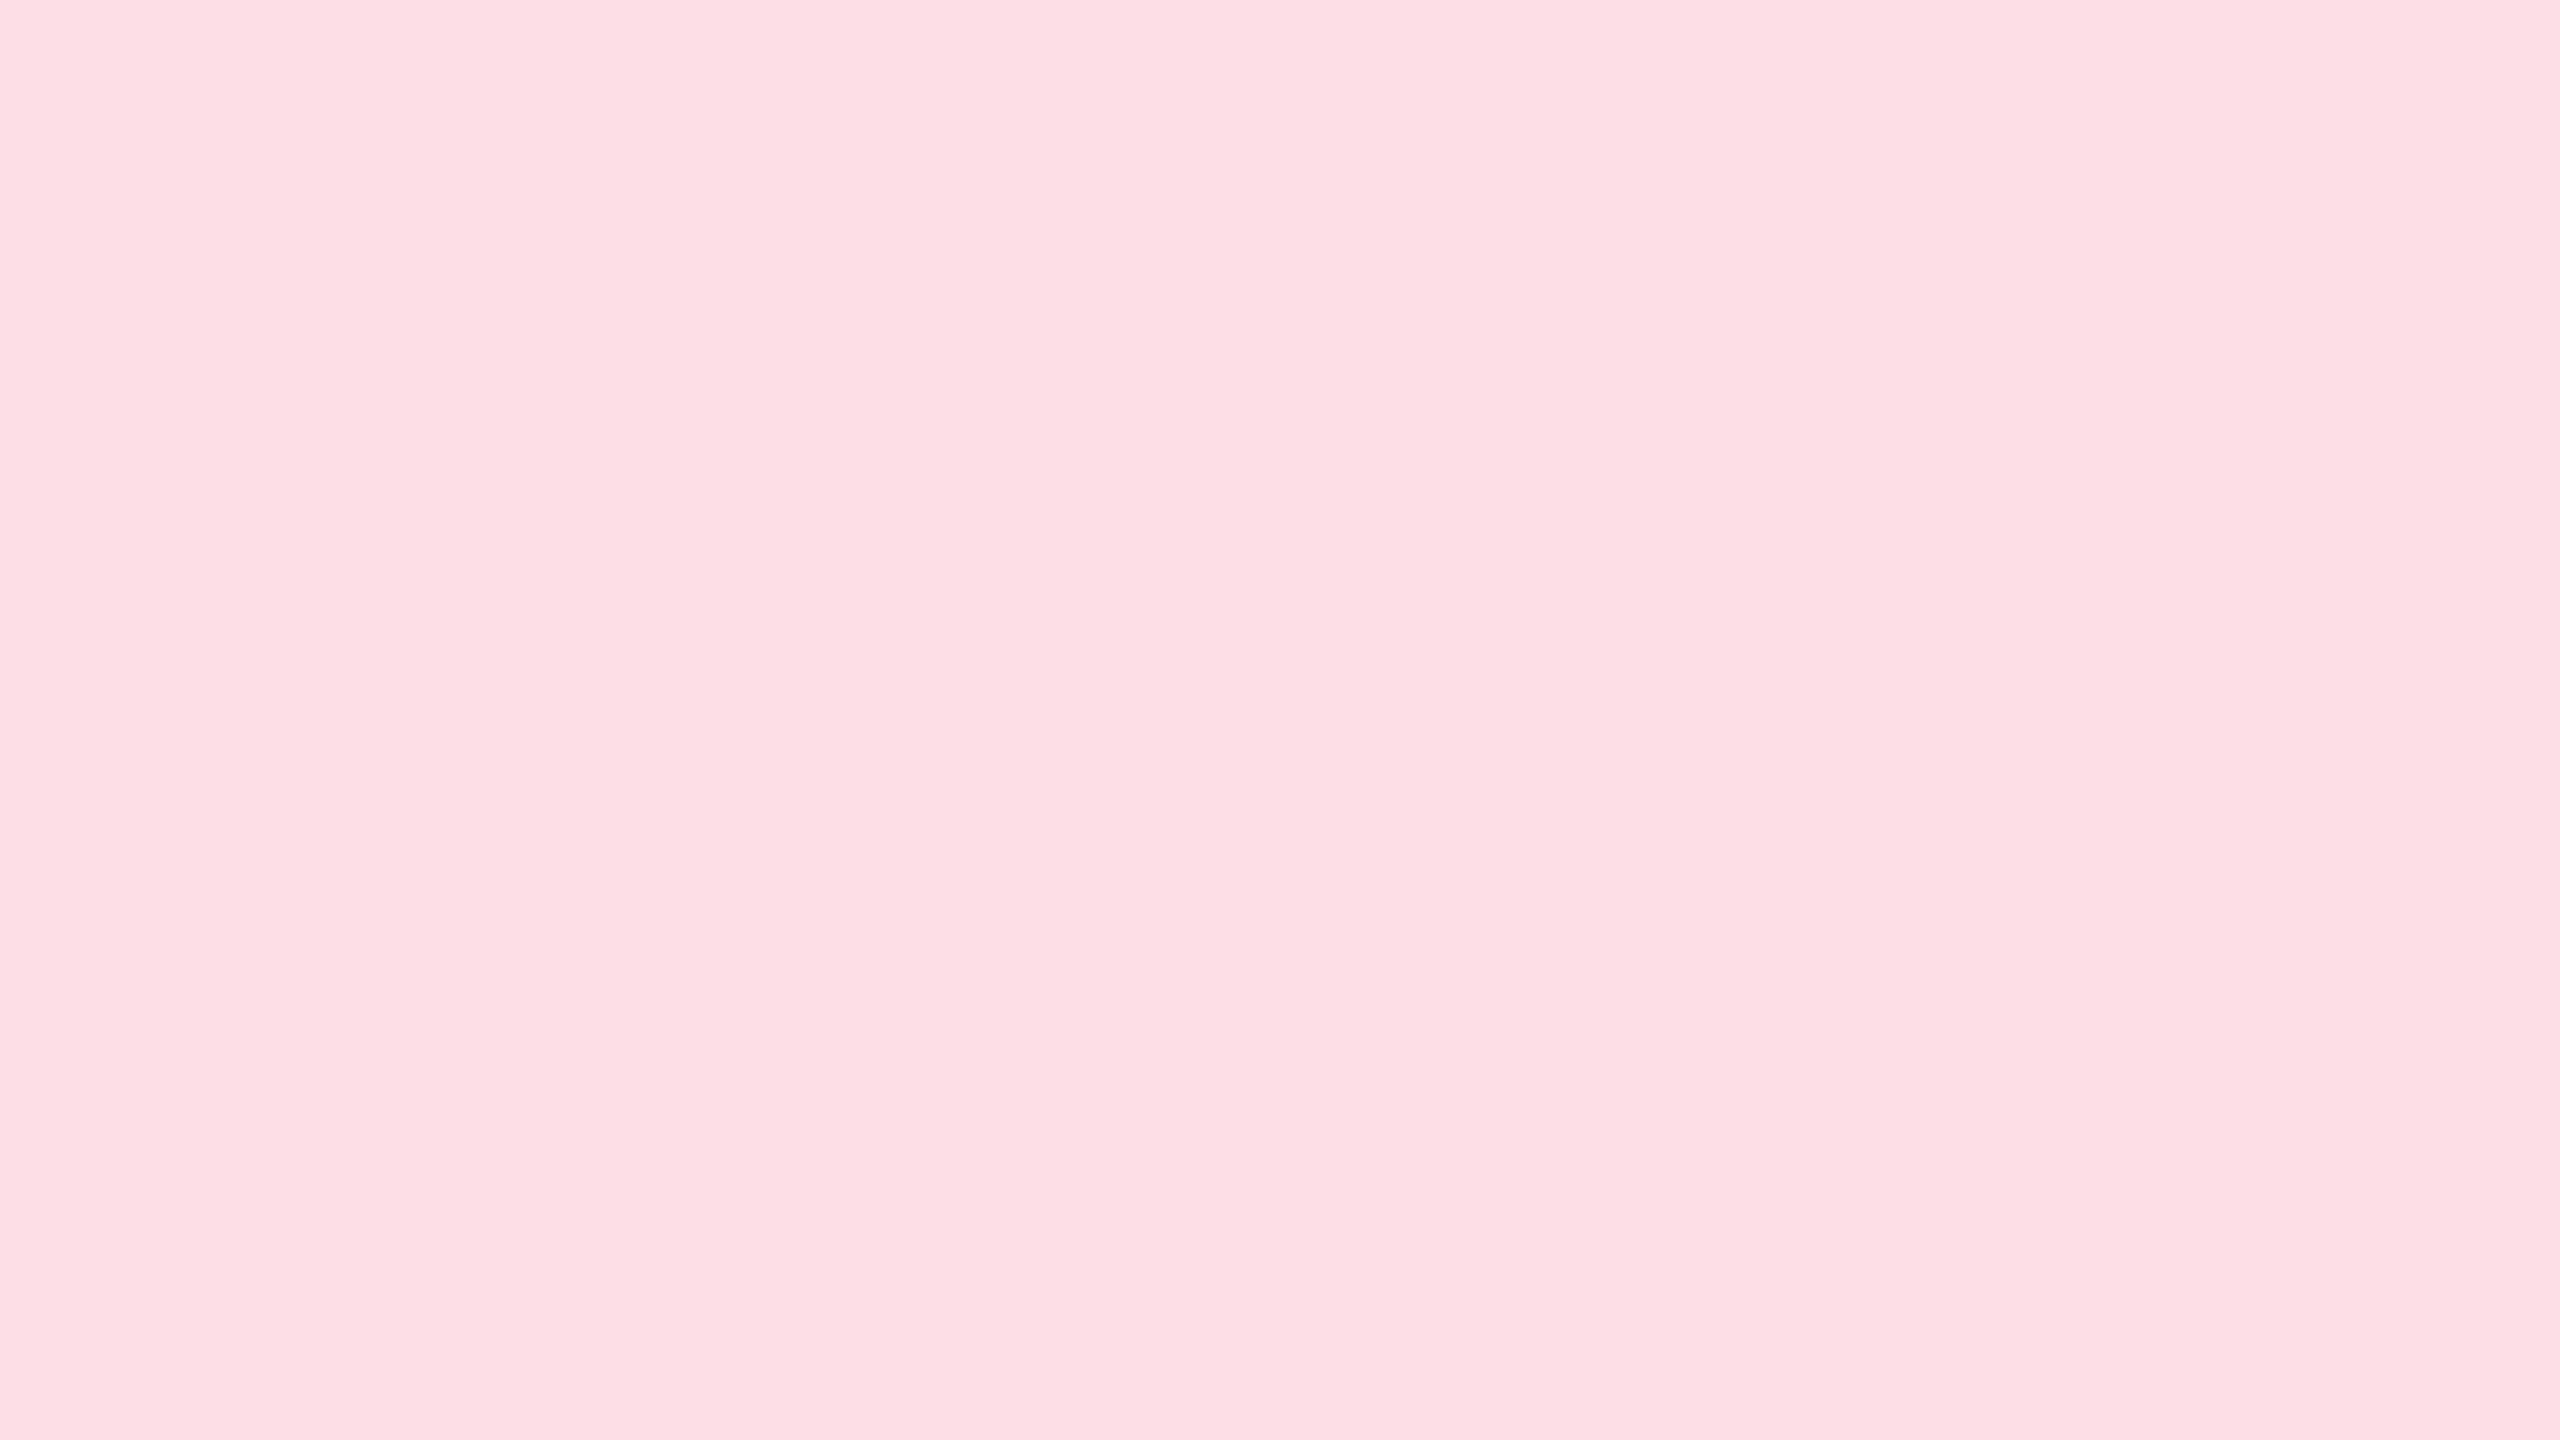 Solid Pink Background Tumblr 2560x1440